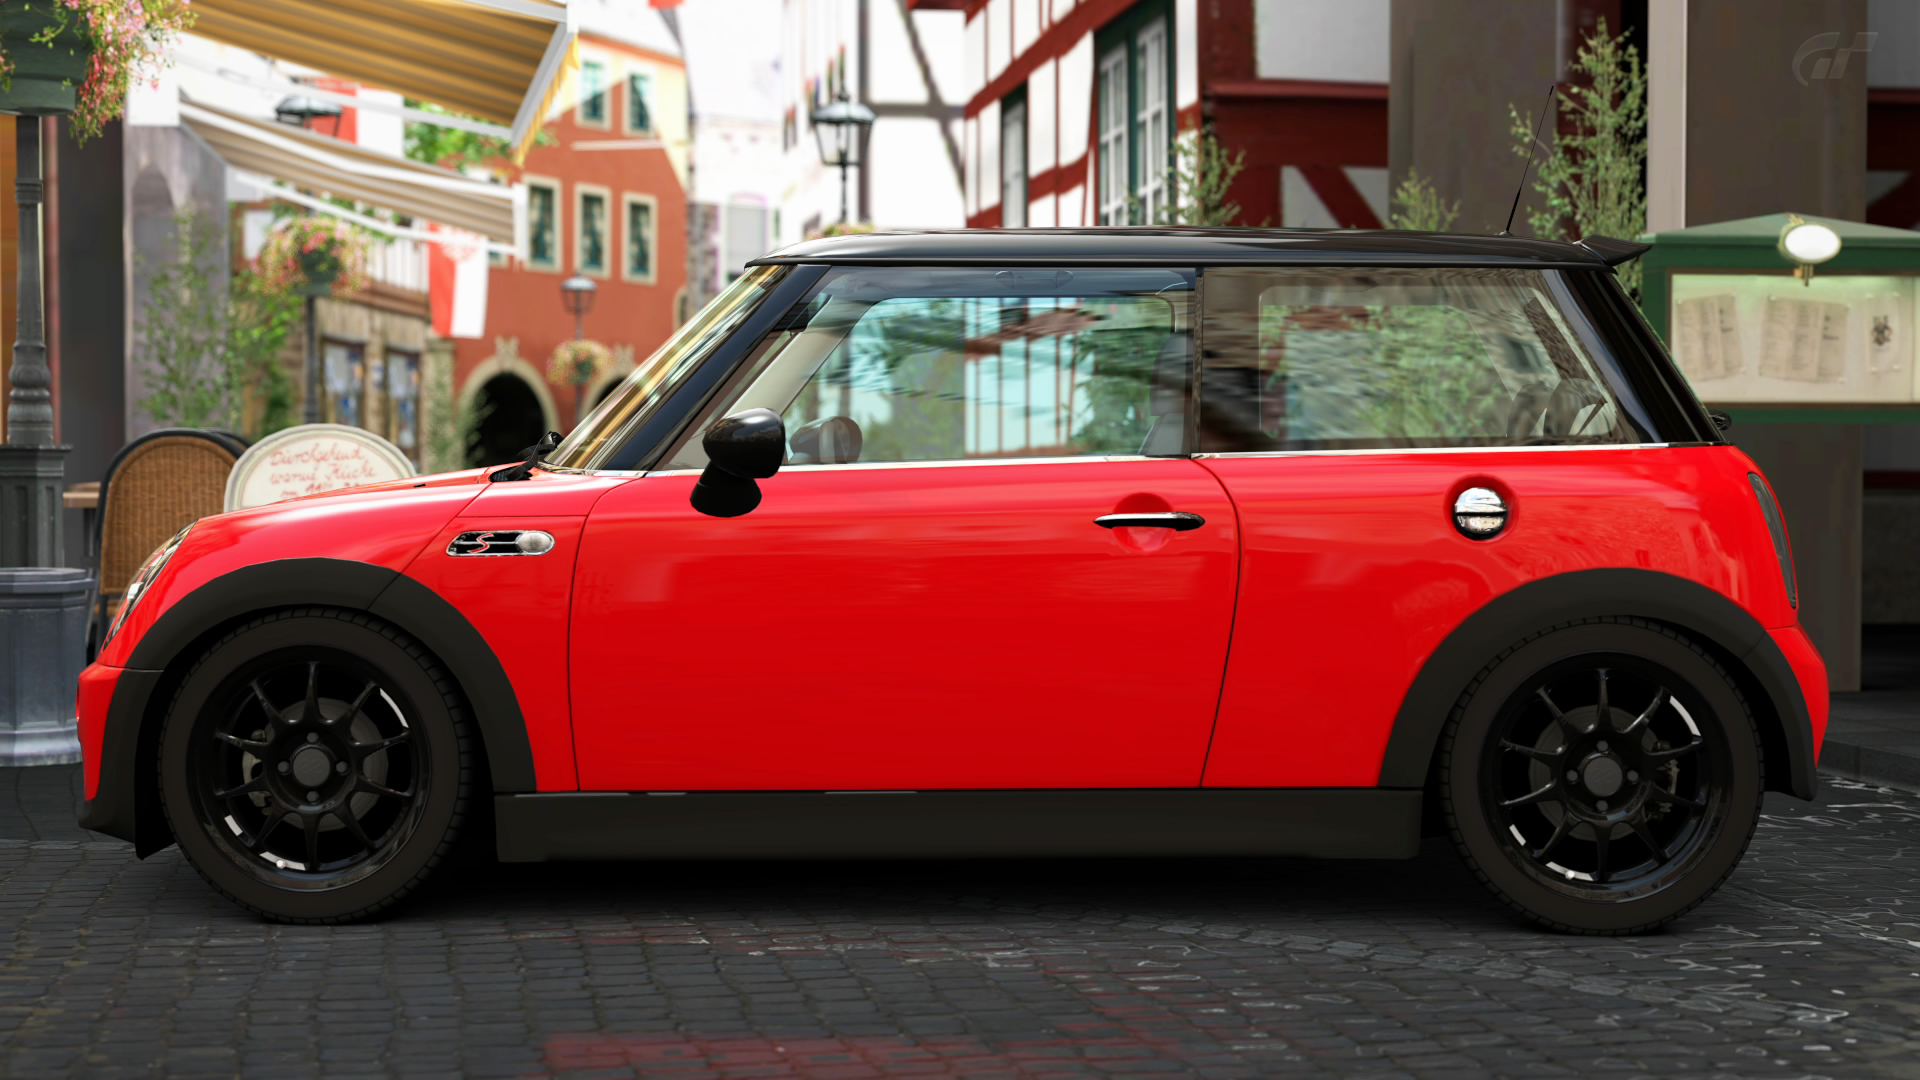 2005 mini cooper s gran turismo 5 by vertualissimo on deviantart. Black Bedroom Furniture Sets. Home Design Ideas